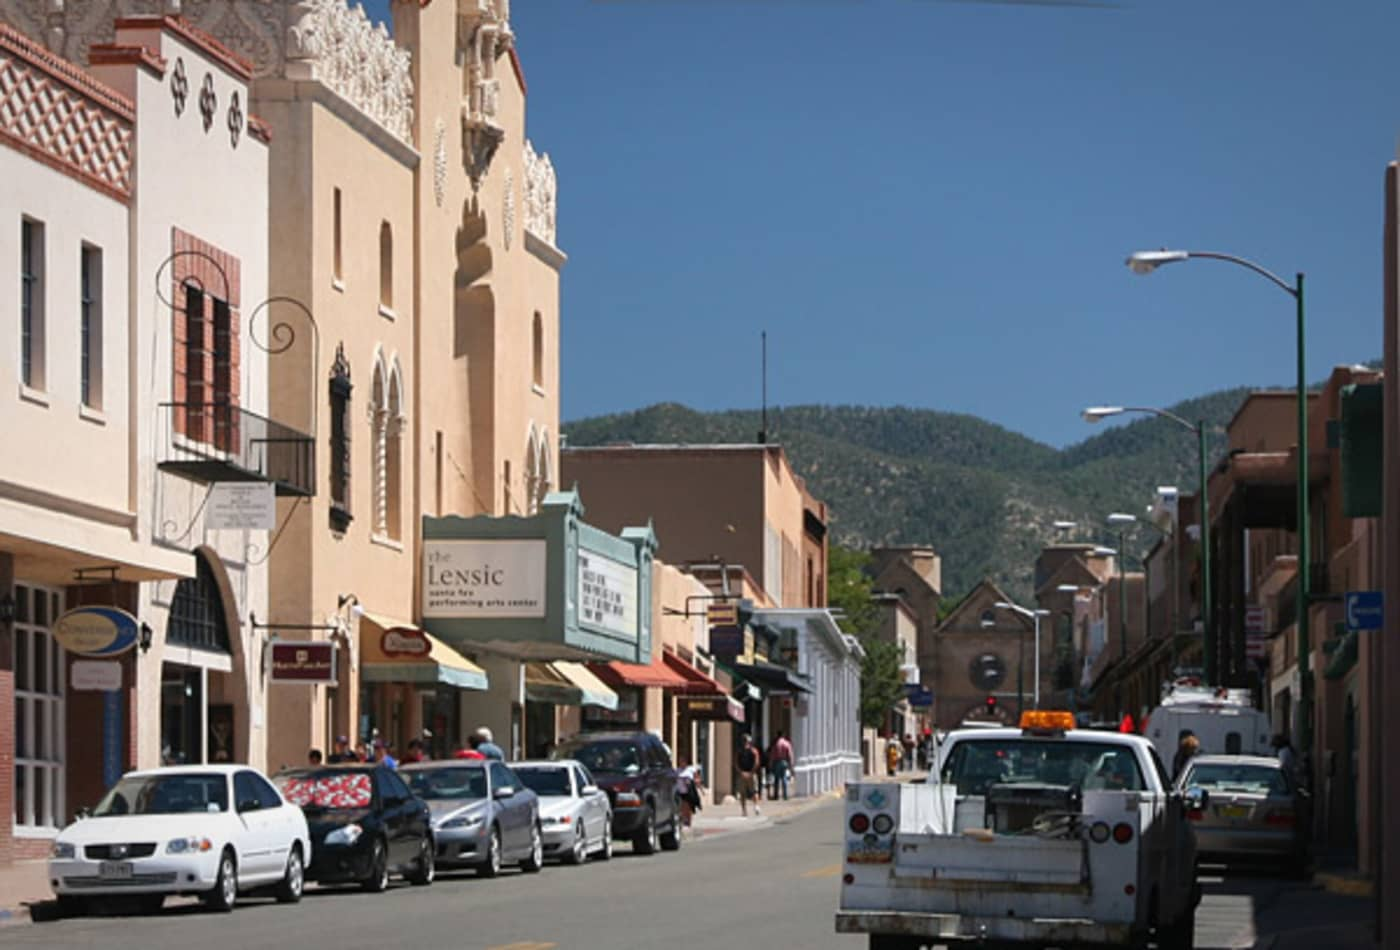 New-Mexico-Where-The-47-Percent-Live-CNBC.jpg